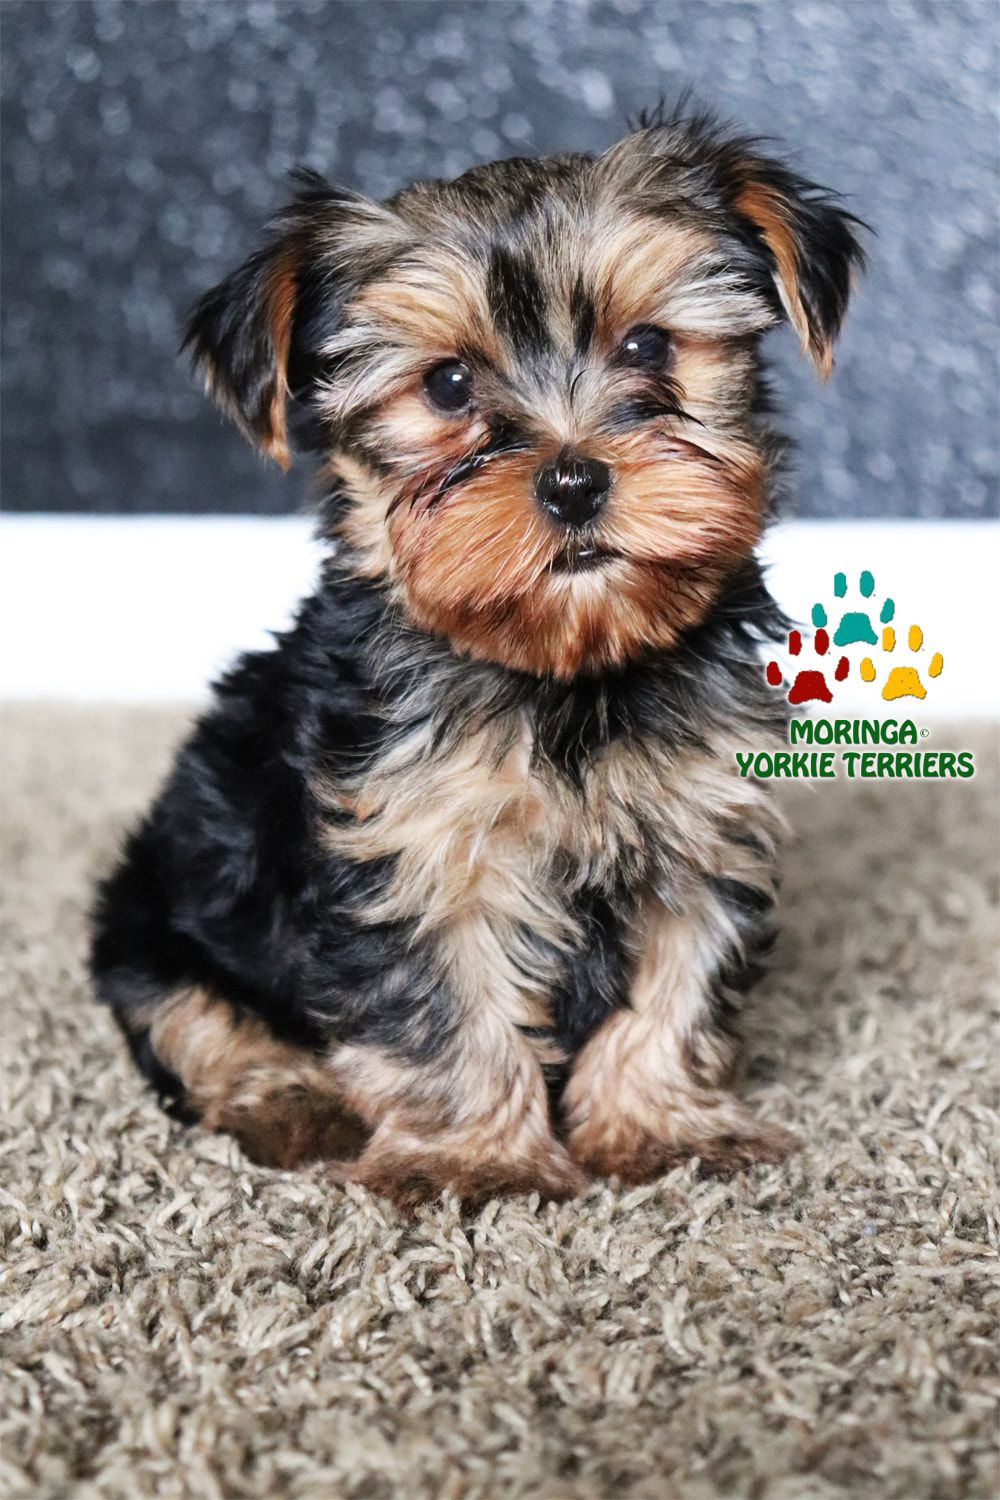 Tiny Teacup Yorkie Puppies For Sale Near Me Cheap : teacup, yorkie, puppies, cheap, YORKIE, PUPPIES, SALE*QUALITY, TEACUP,, PUPPIES*YORKIES, SOUTHERN, CALIFORINA*BOUTIQUE…, Yorkie, Puppy, Sale,, Terrier,, Teacup